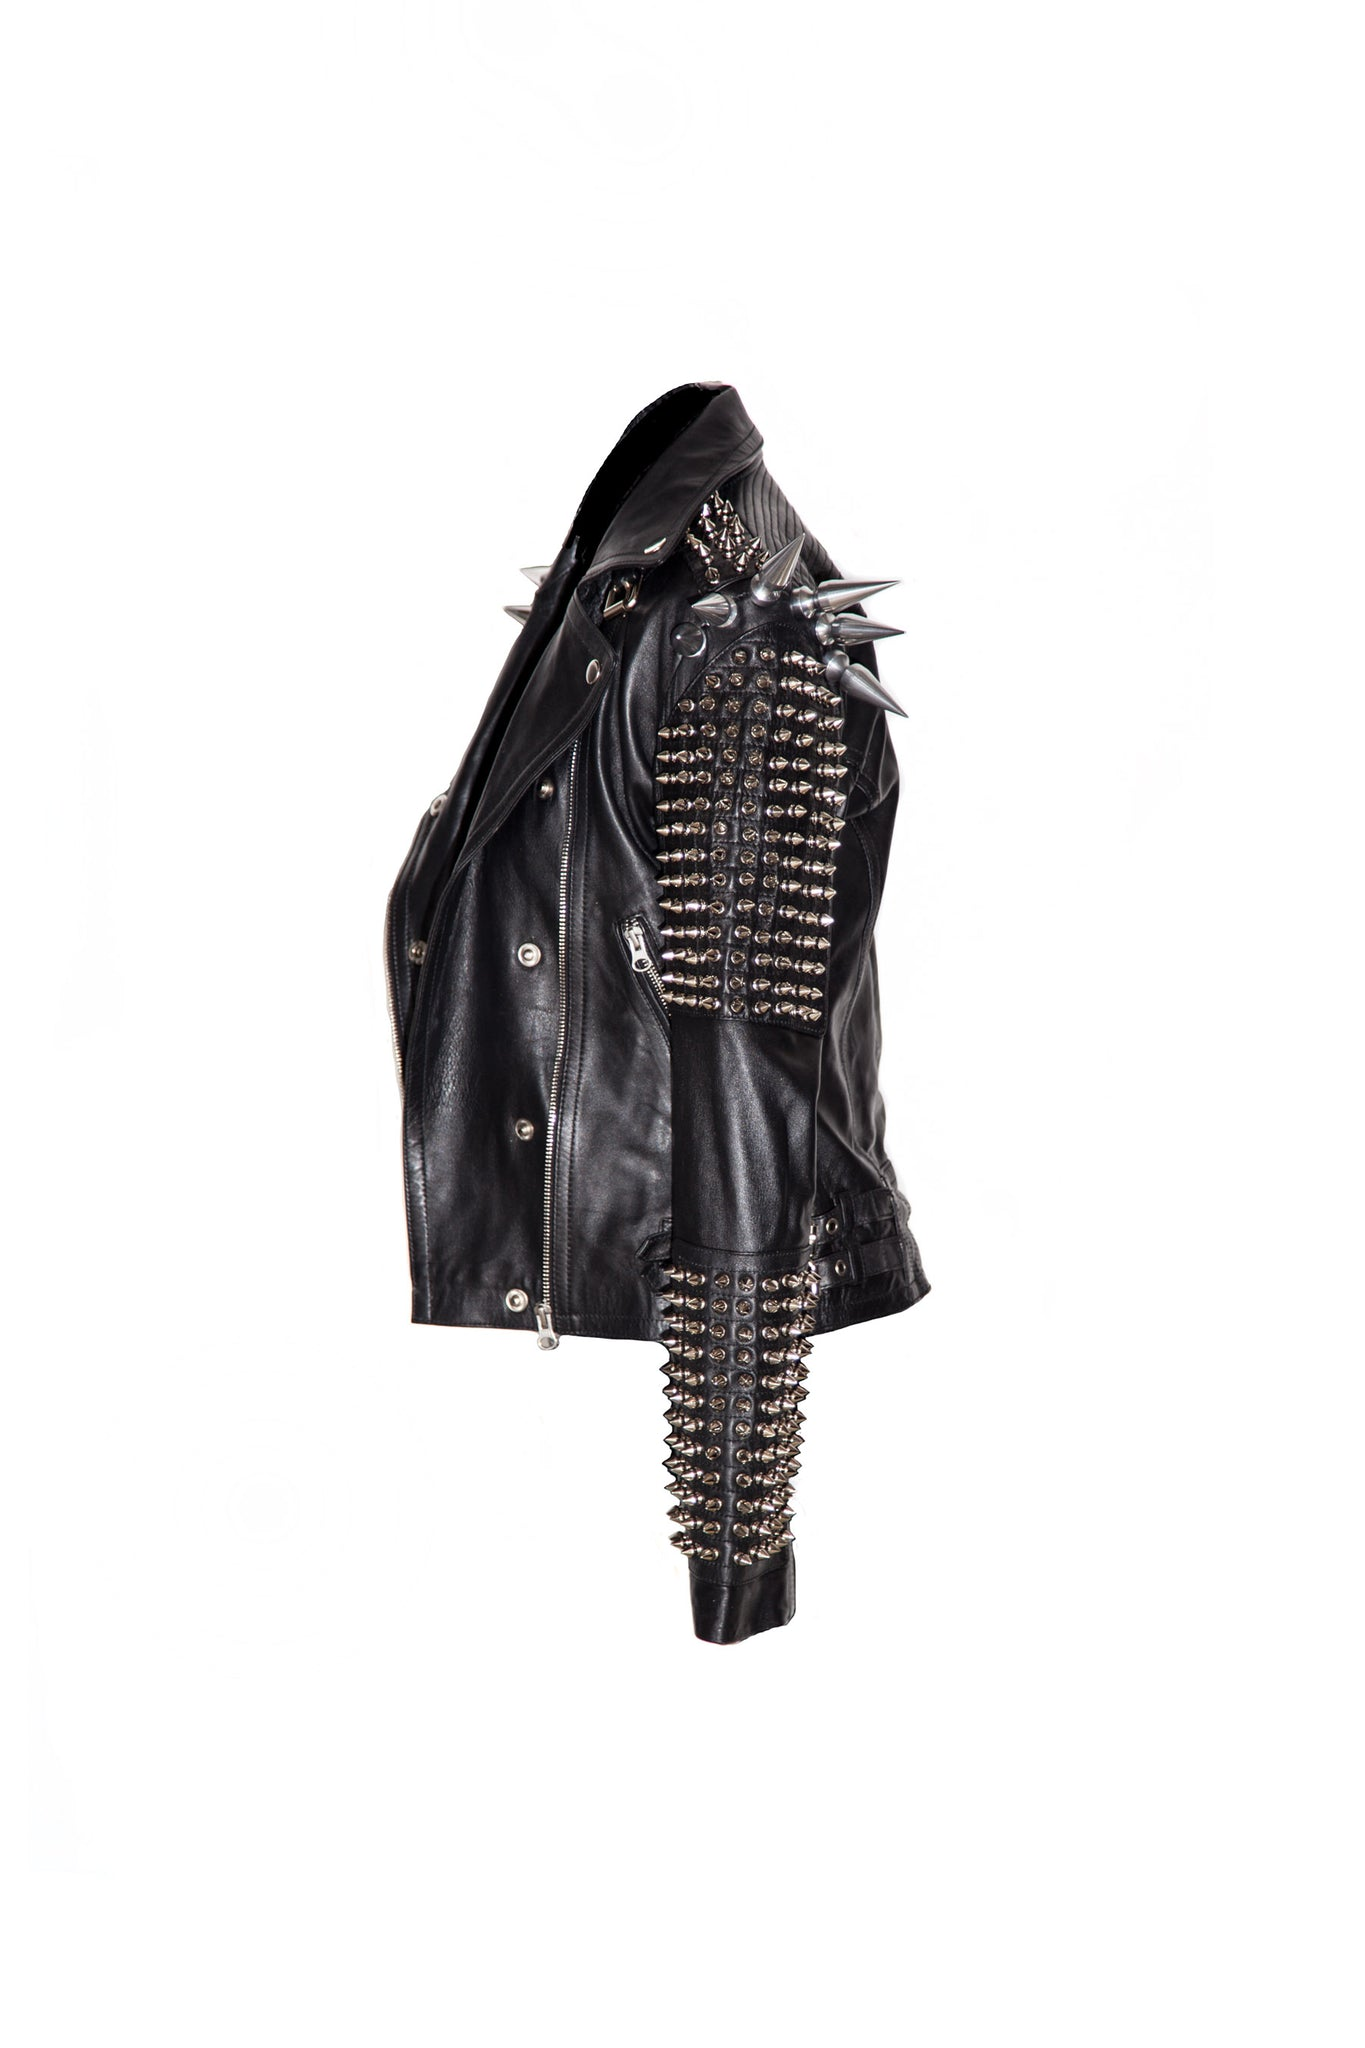 Stargazer Giant Spike Leather Jacket